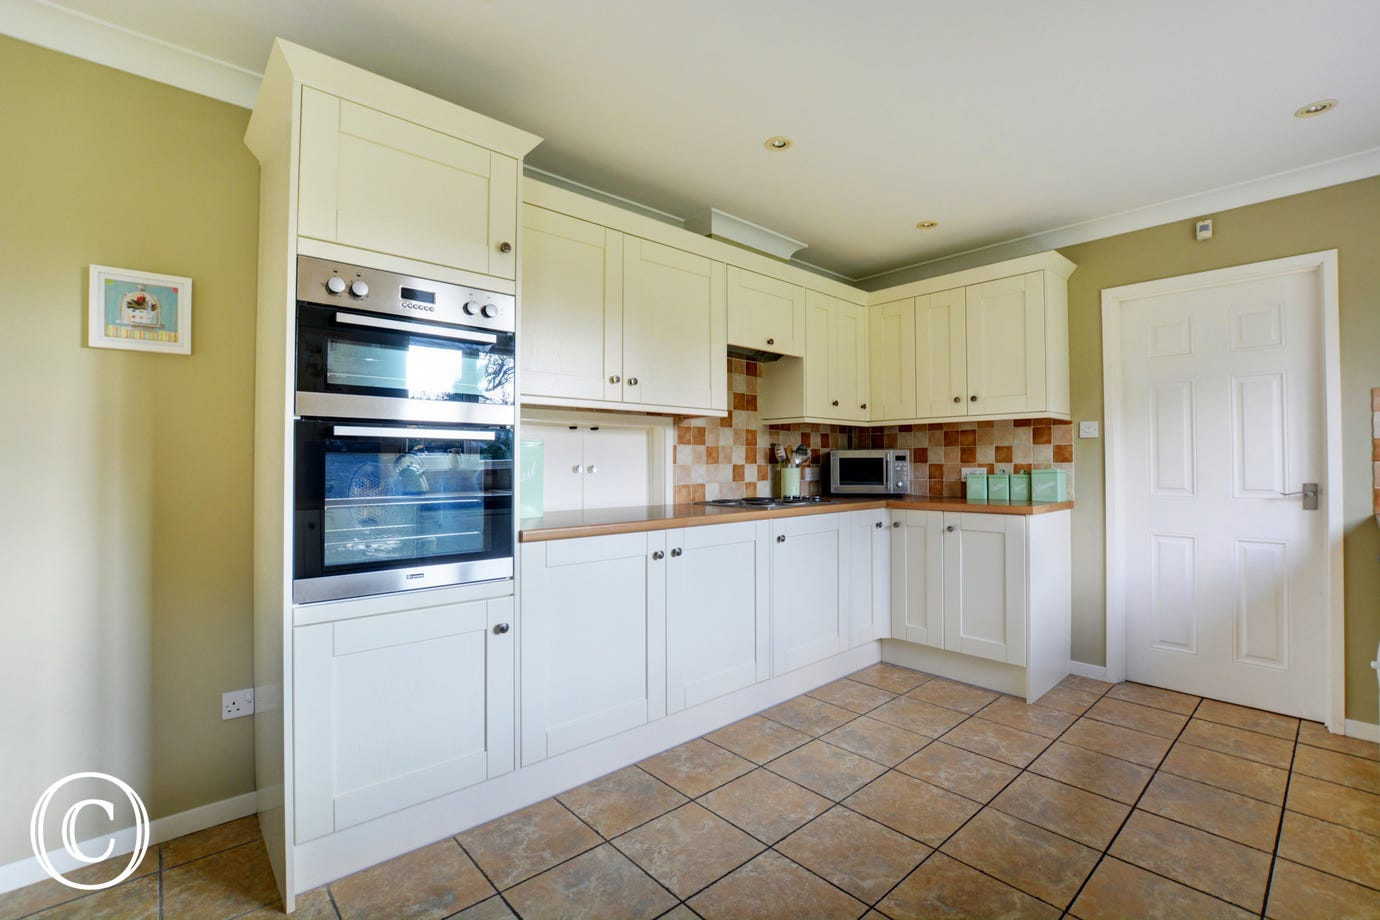 With lots of storage and workspace, this kitchen would be a pleasure to work in